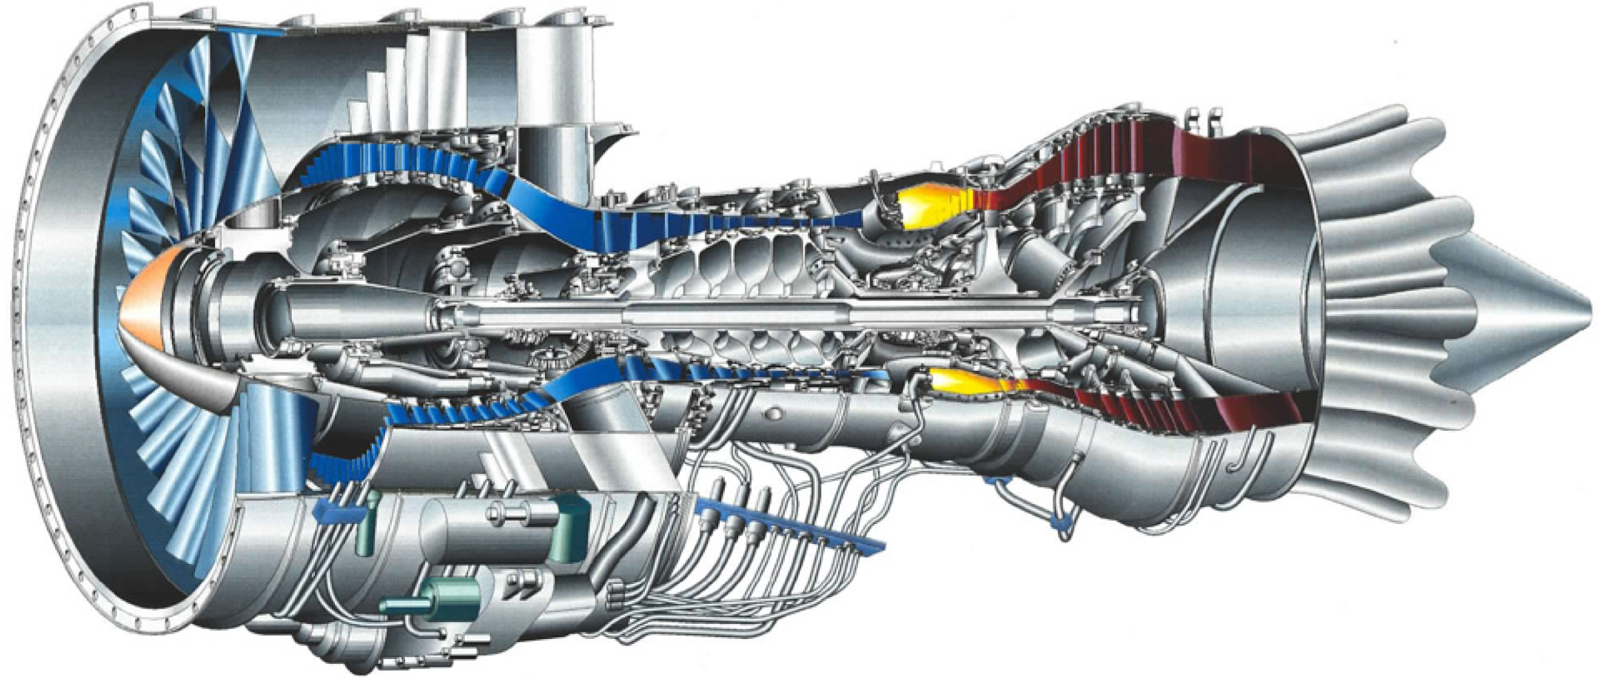 gas turbine The thermodynamic cycle of the basic combined cycle consists of two power plant cycles one is the joule or brayton cycle which is a gas turbine cycle and the other is rankine cycle which is a steam turbine cycle.